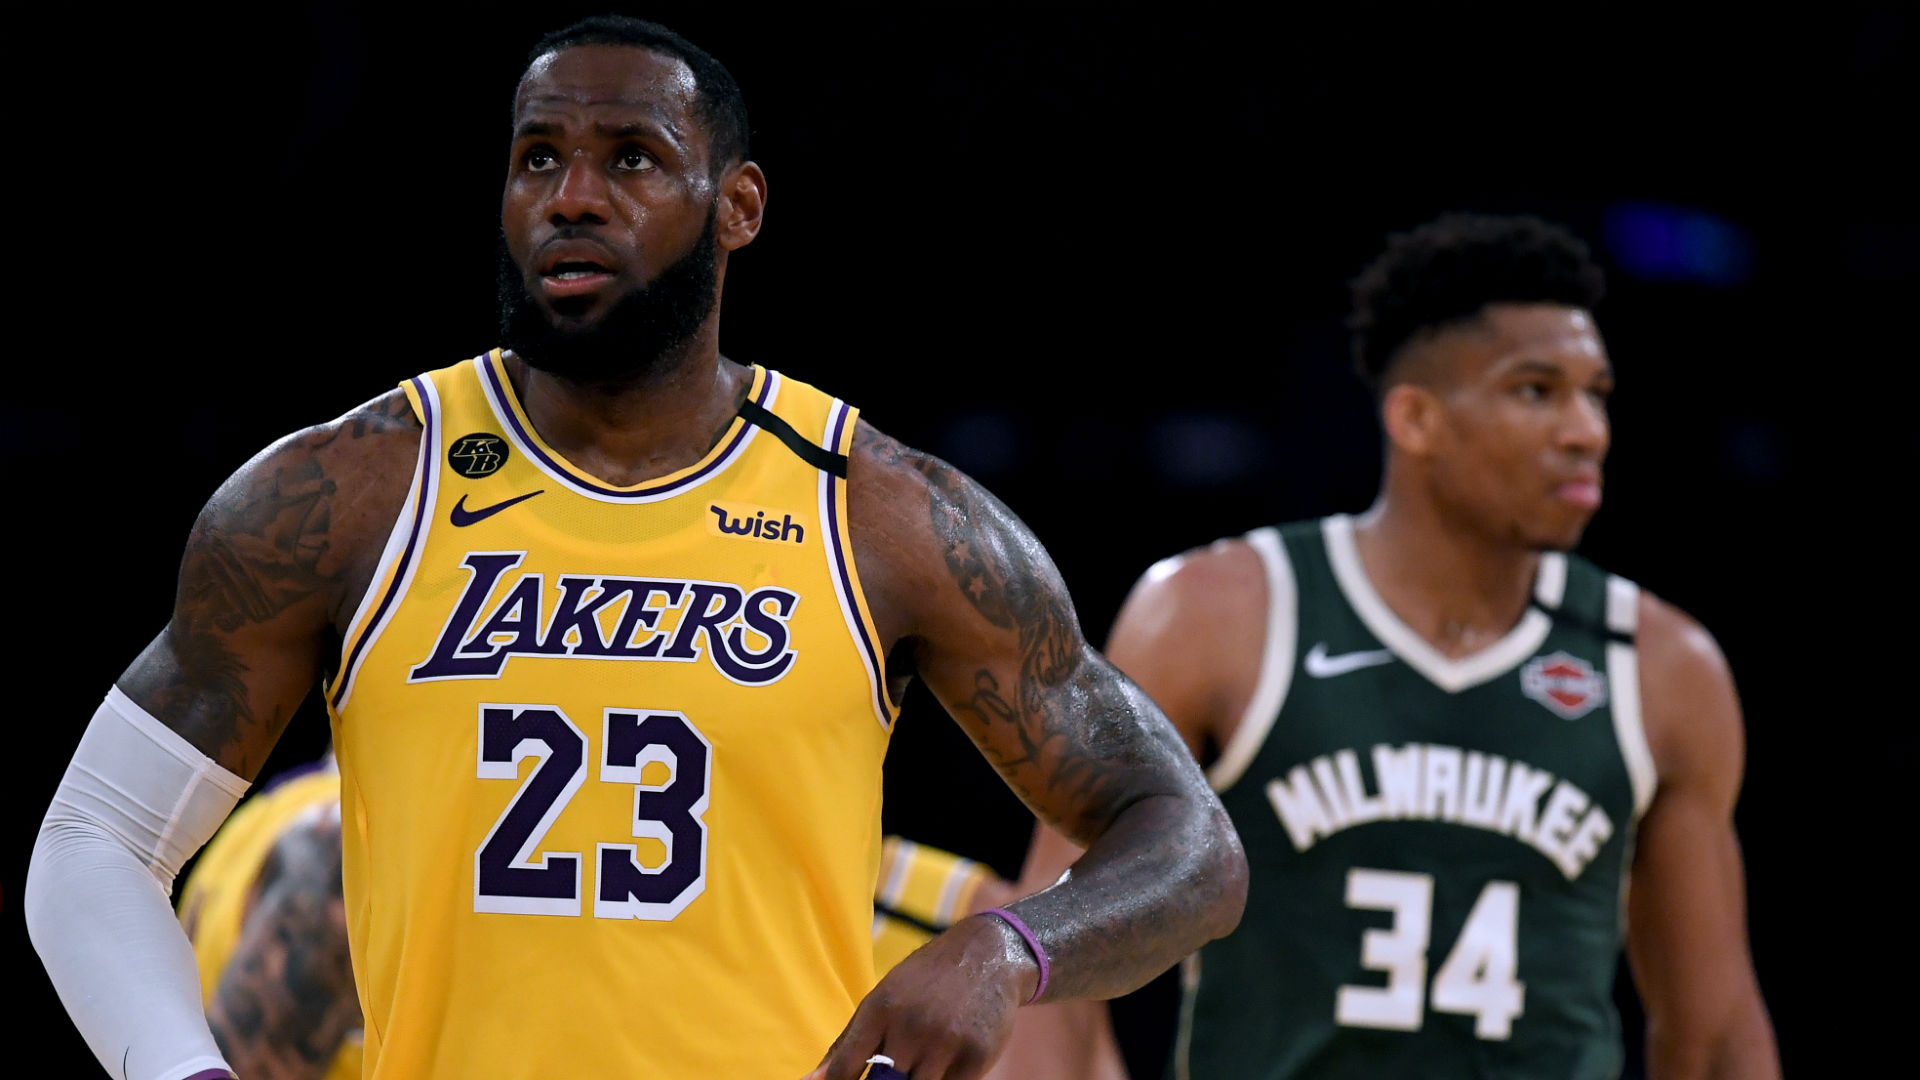 NBA playoff predictions 2020: Why the Lakers are unlikely to win NBA Finals, according to one model 1